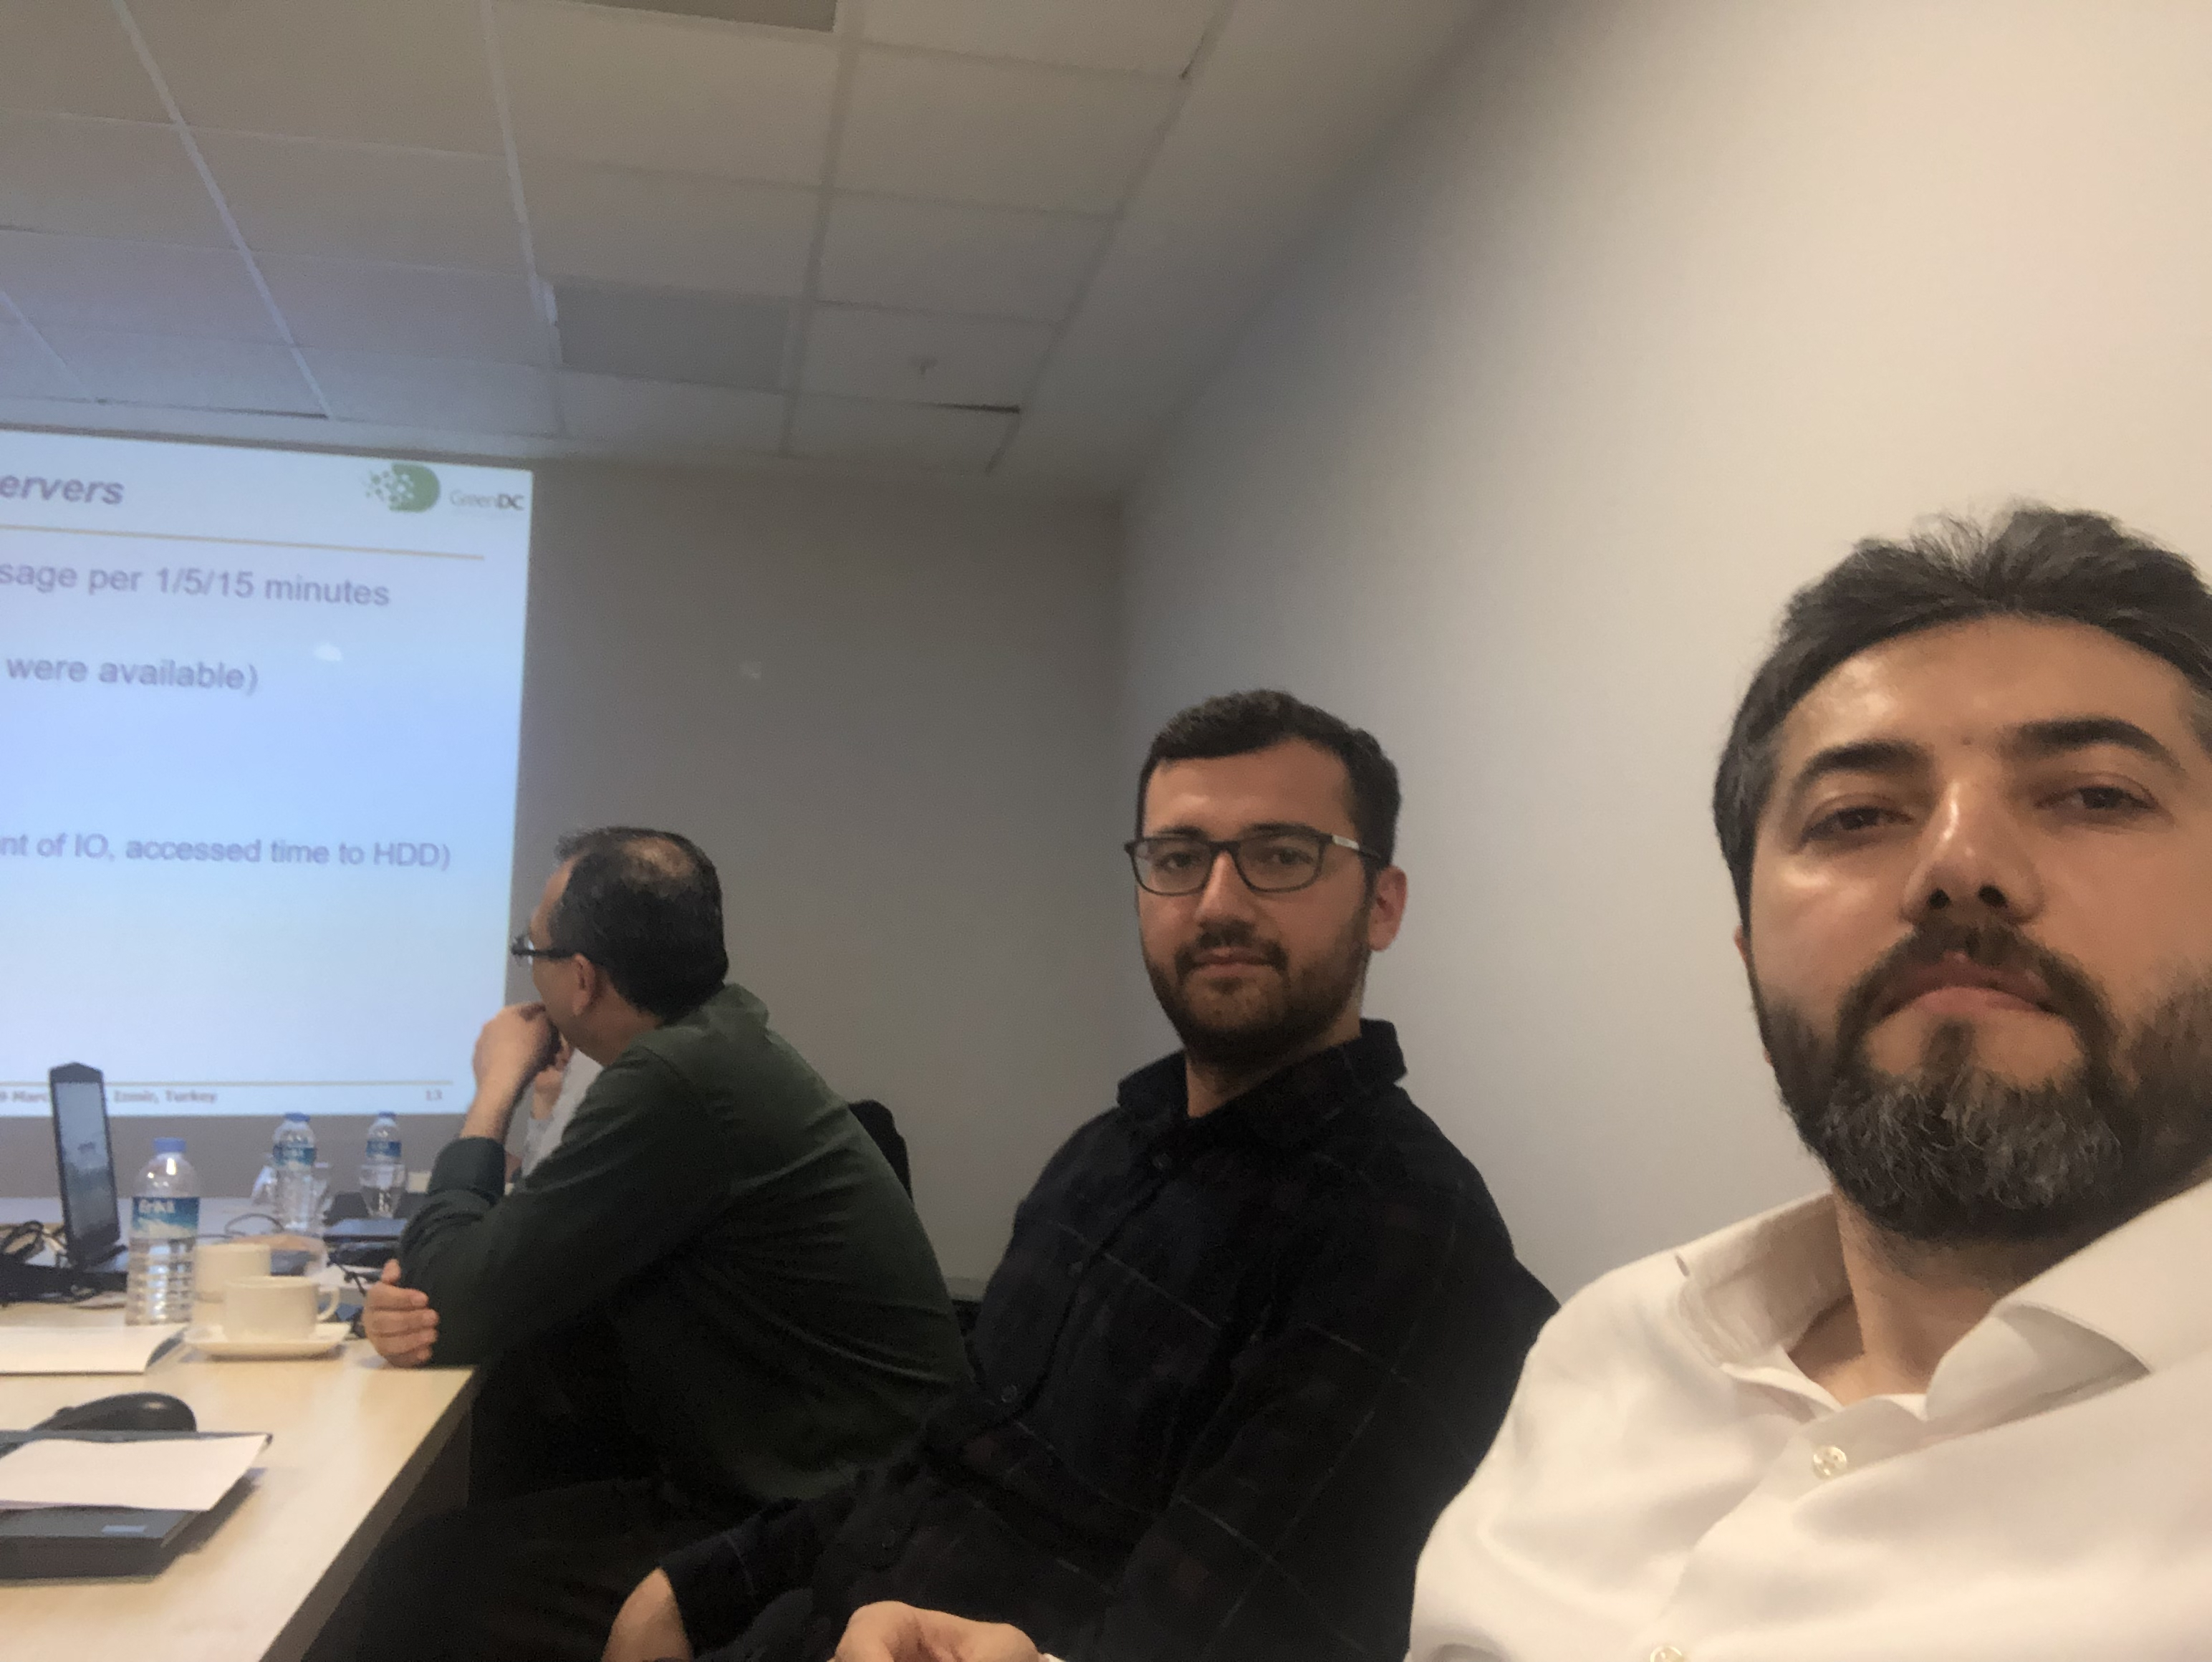 GA meeting - 25-28.03.2019, Izmir, Turkey